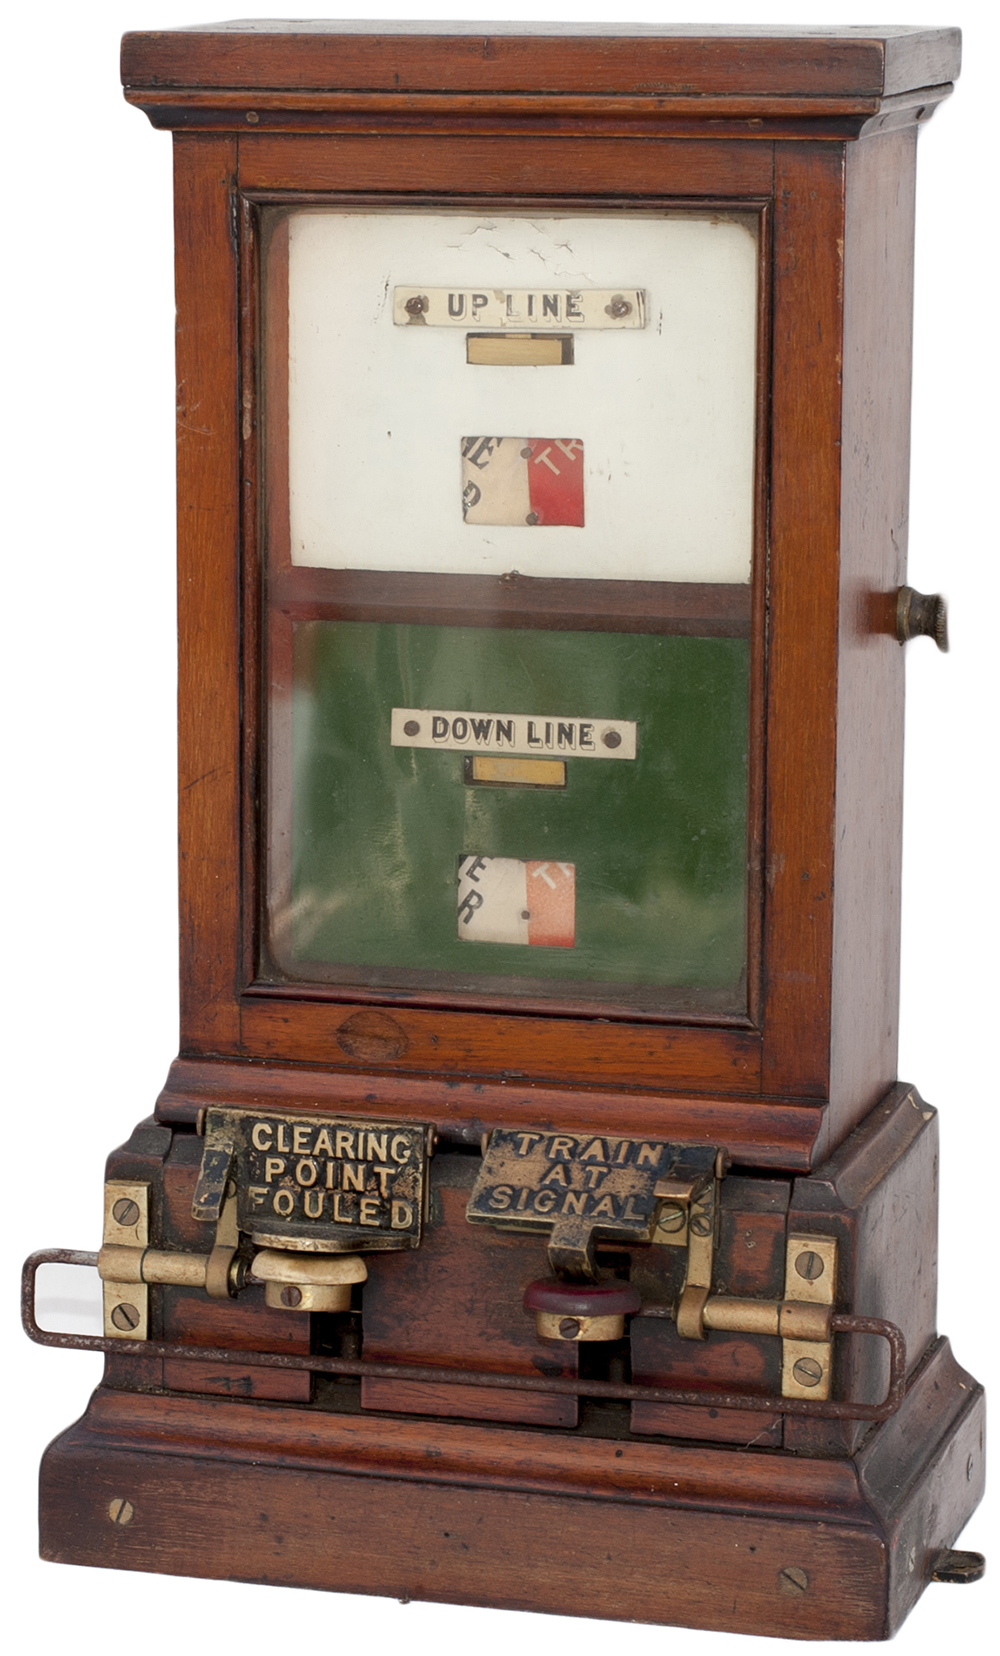 Lot 7 - GWR Spagnoletti Double Line Block Instrument complete with both tappers and early UP LINE and DOWN